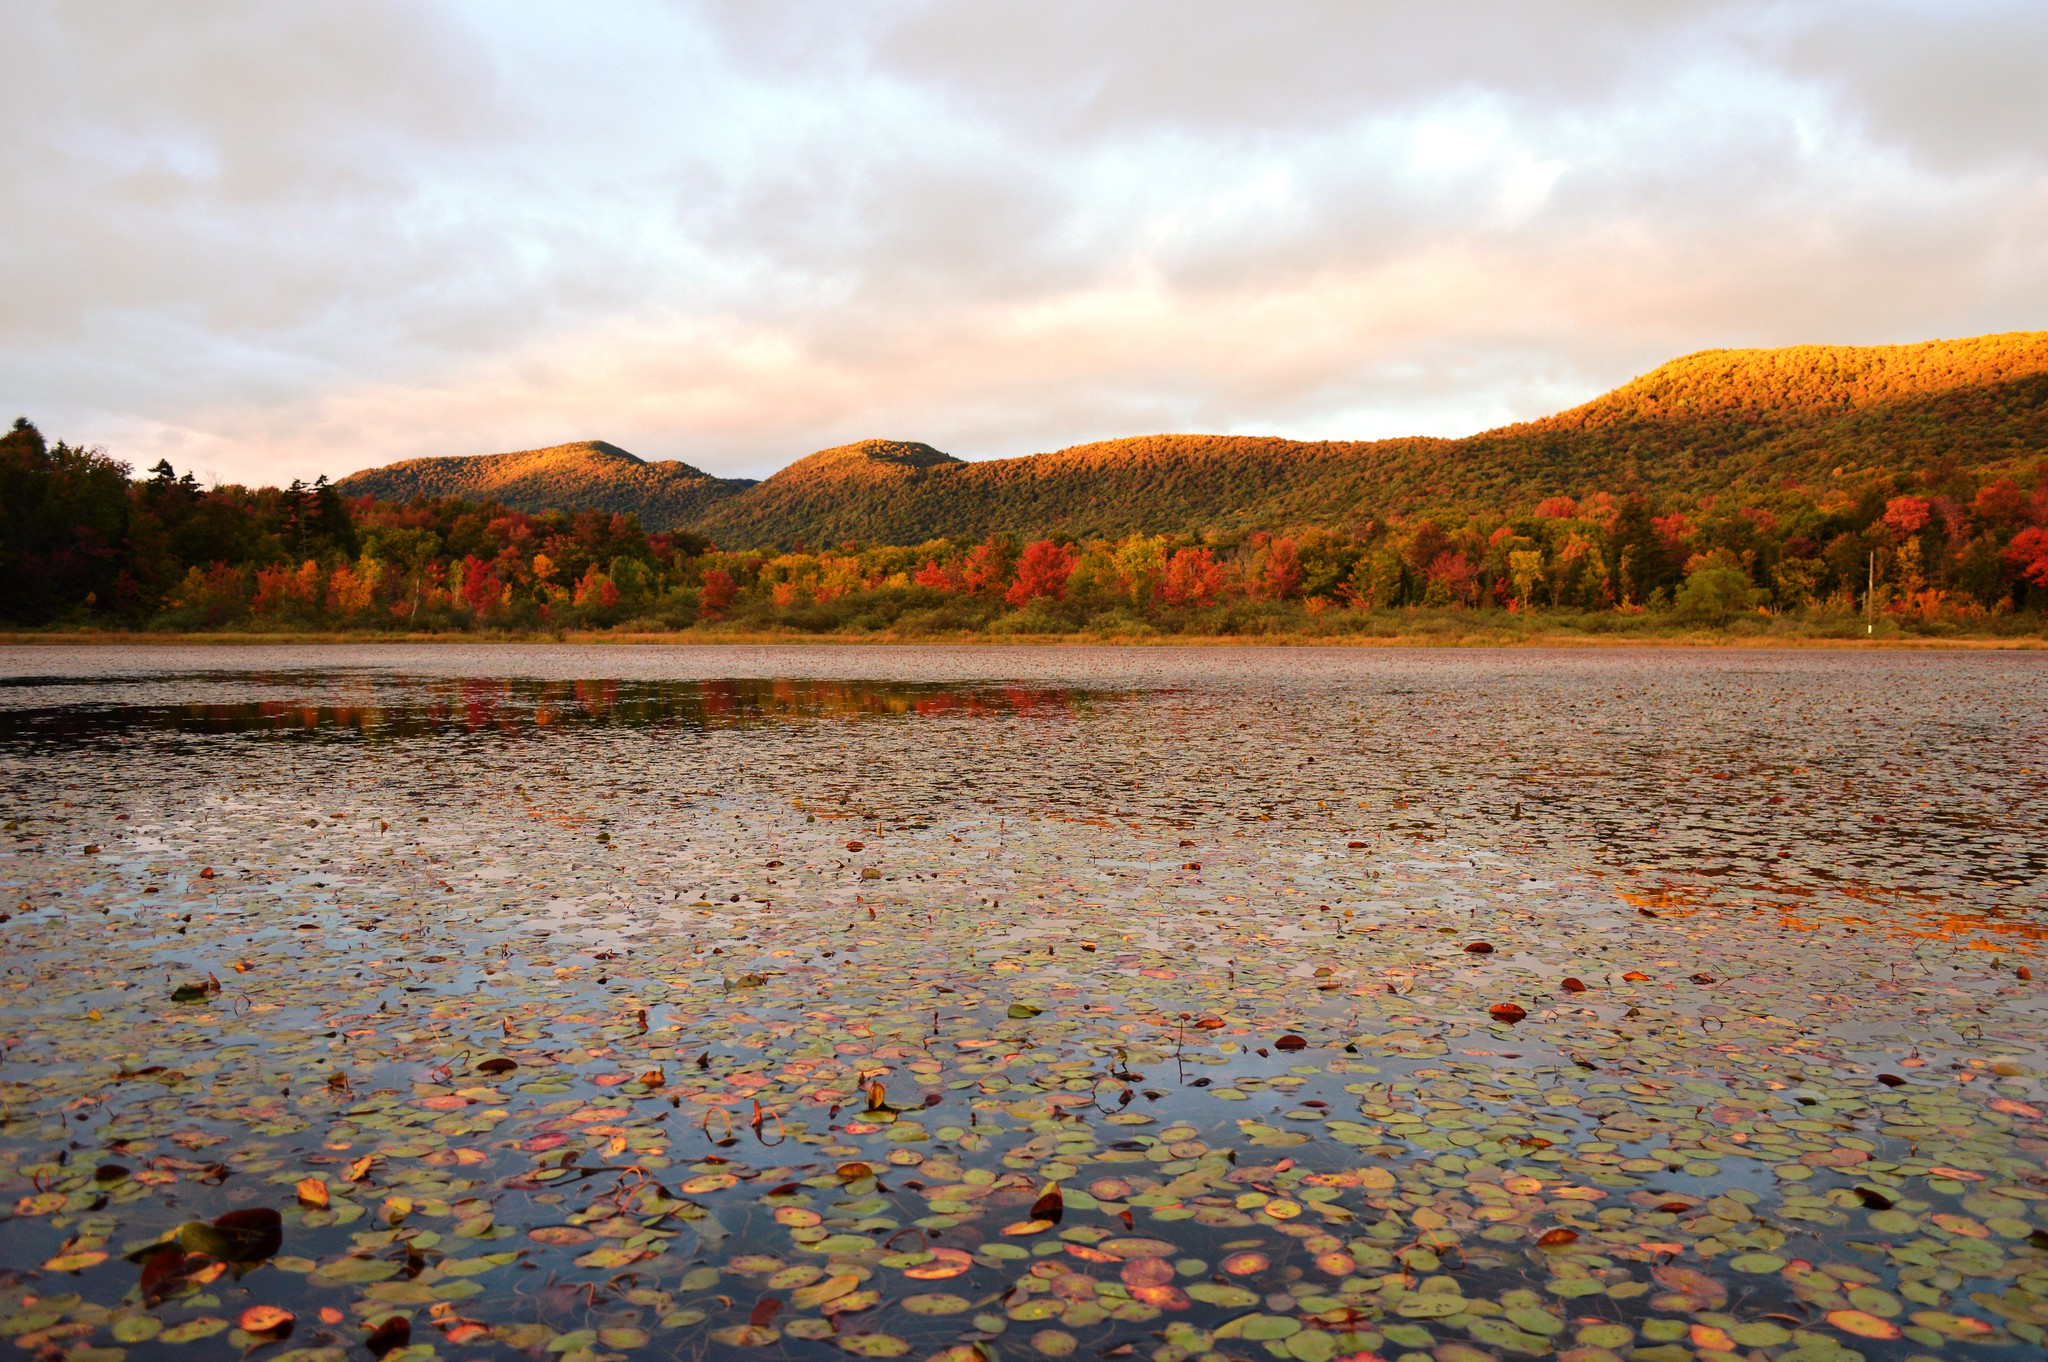 The setting sun highlights the fall foliage at Lefferts Pond on the Green Mountain National Forest